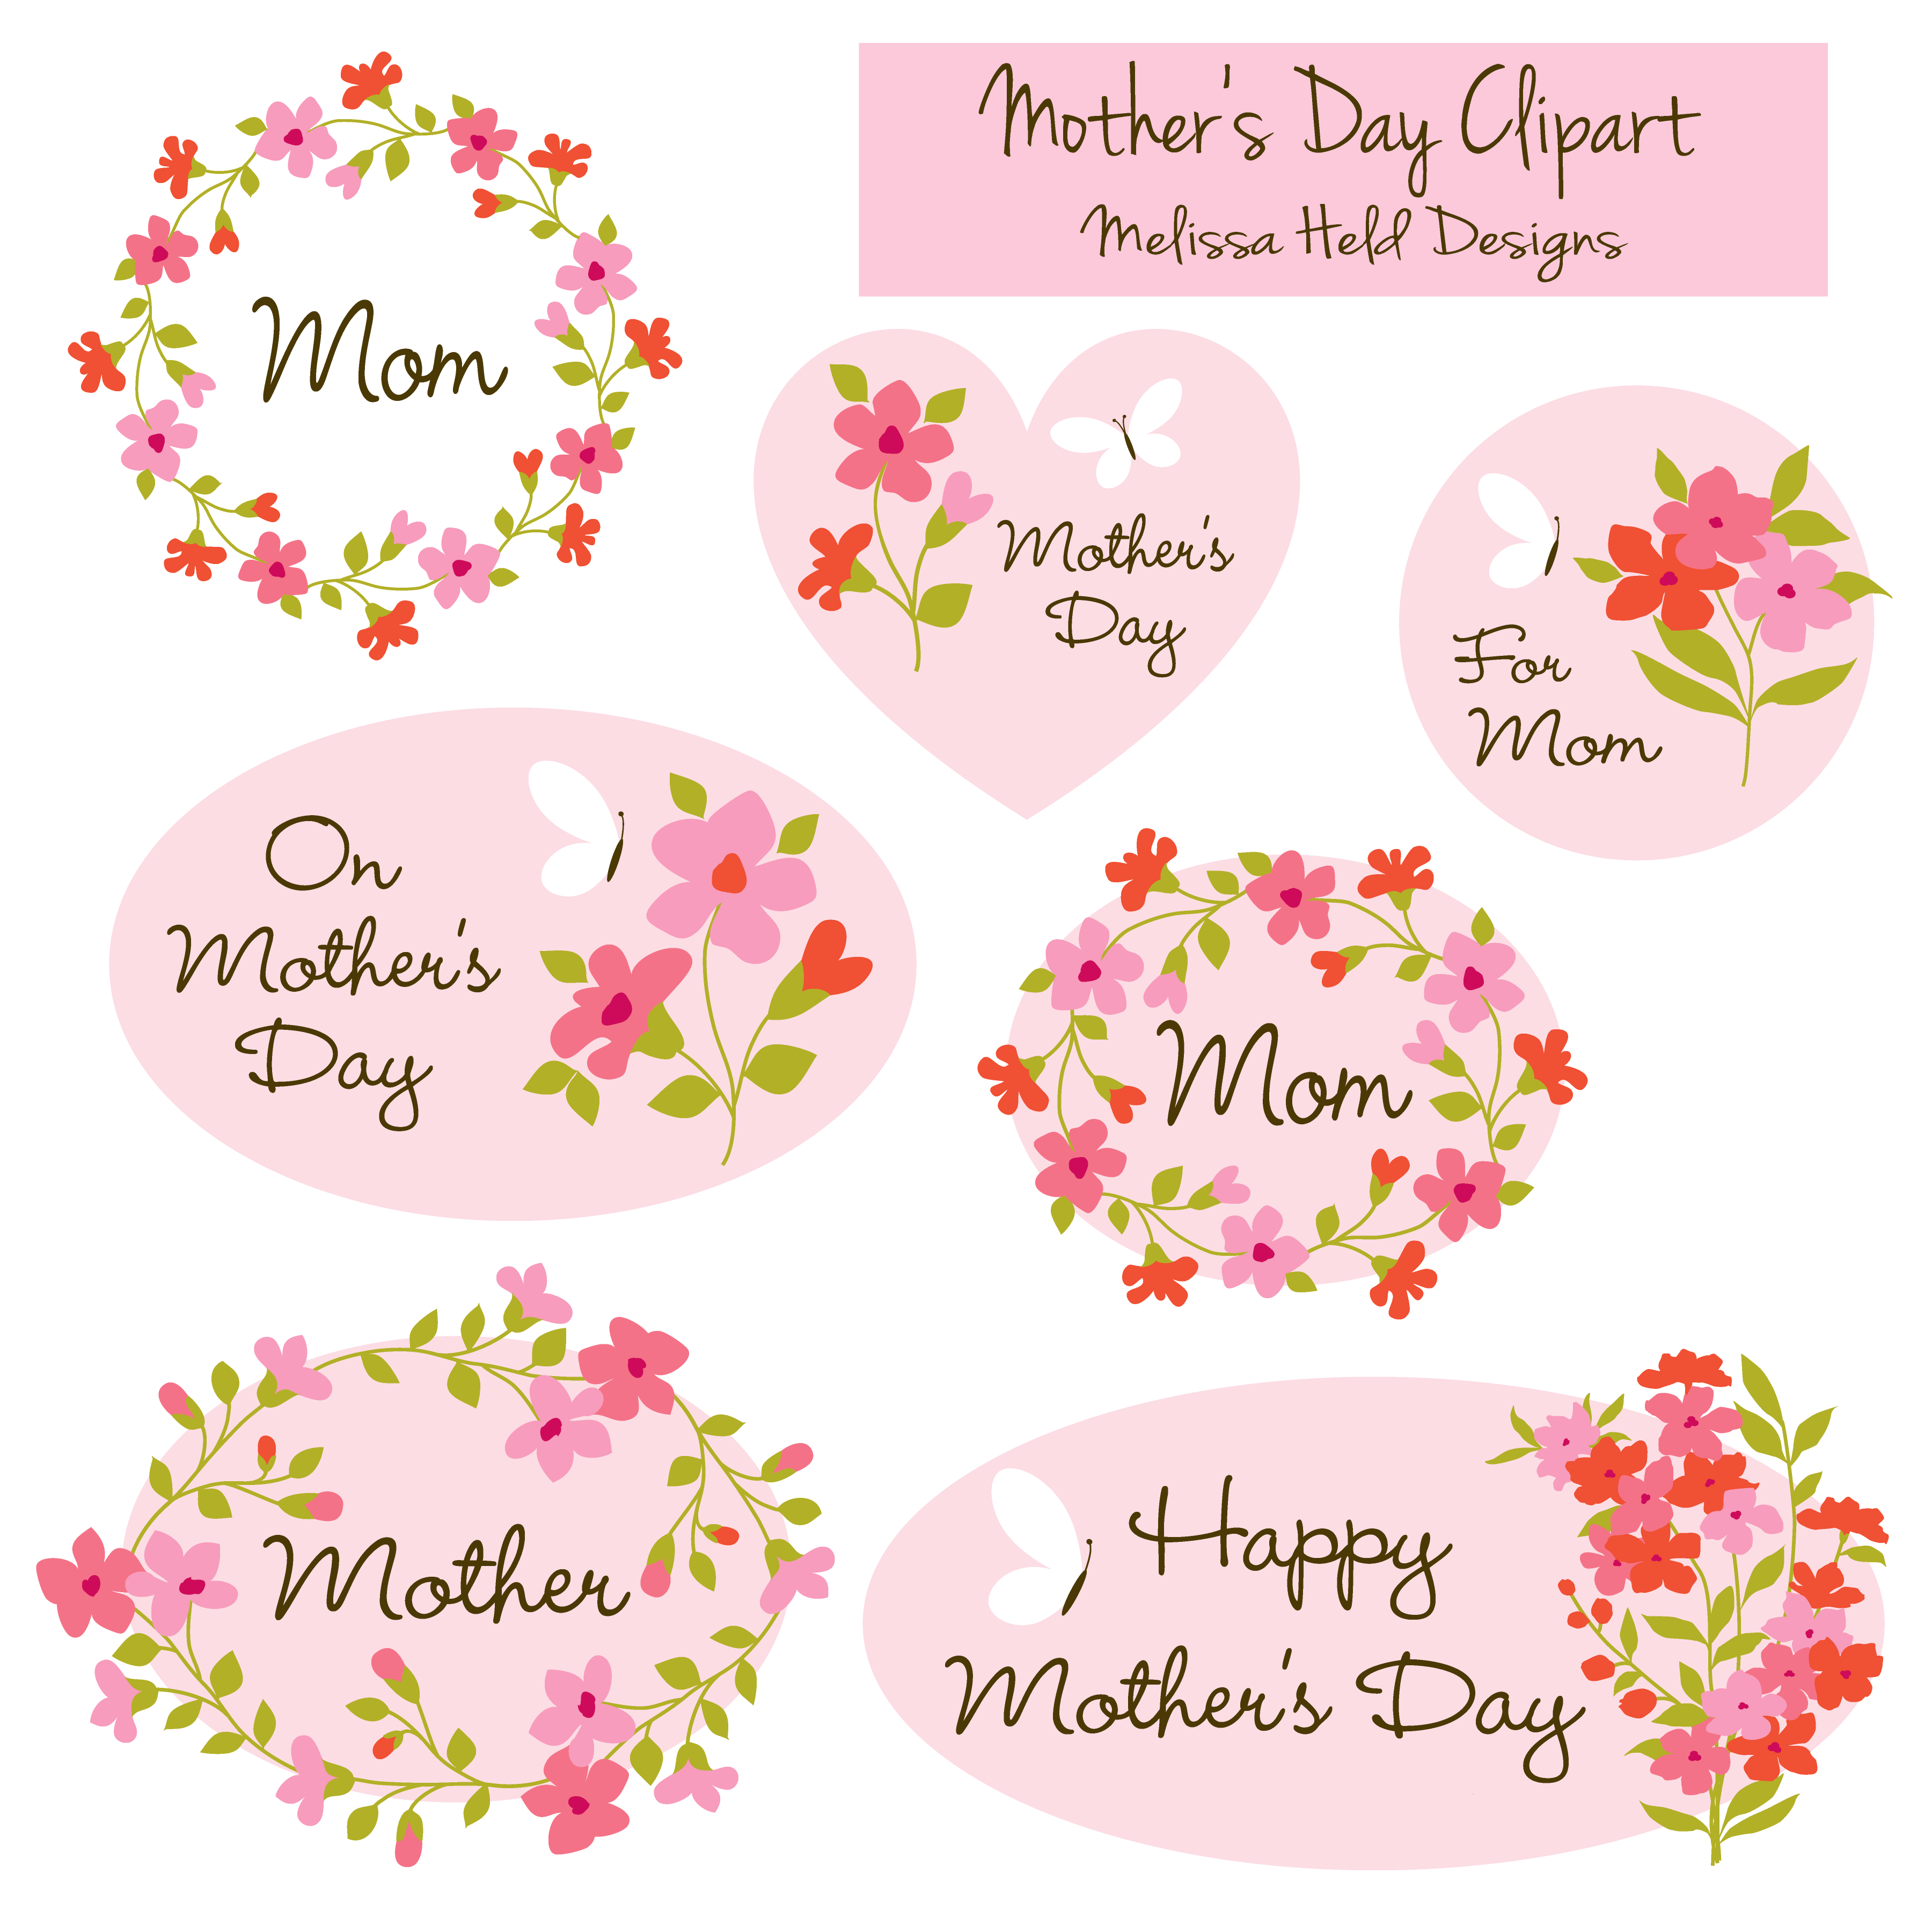 Mothers Day Clipart Mothers Day Crafts Mothers Day Cupcake Toppers Baby Shower Girl